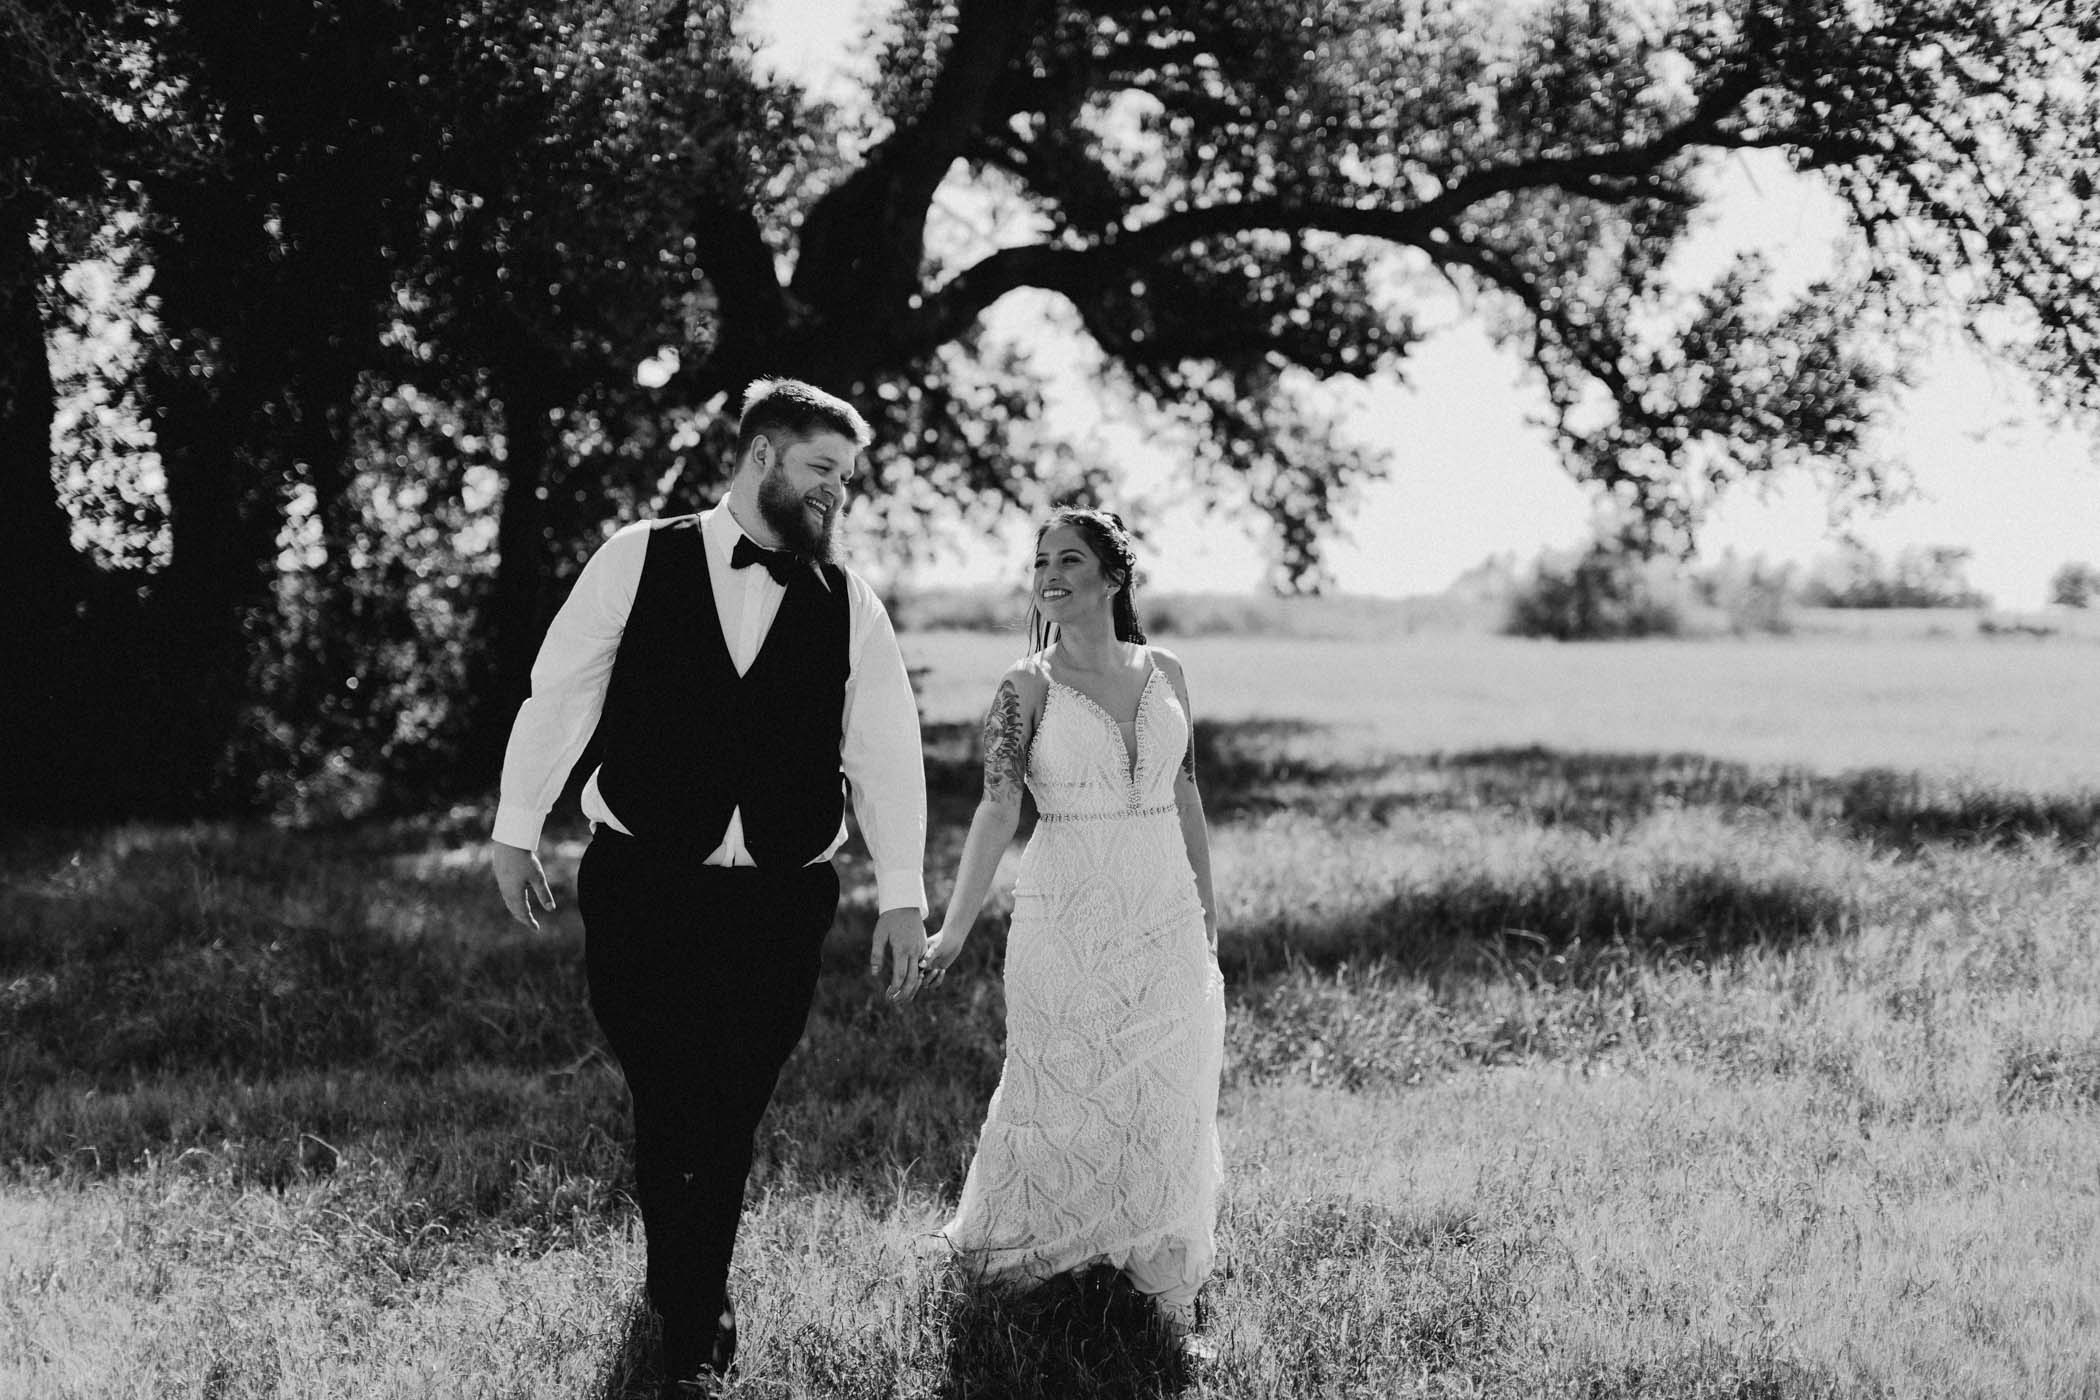 black and white of bride and groom walking in a field after their wedding ceremony